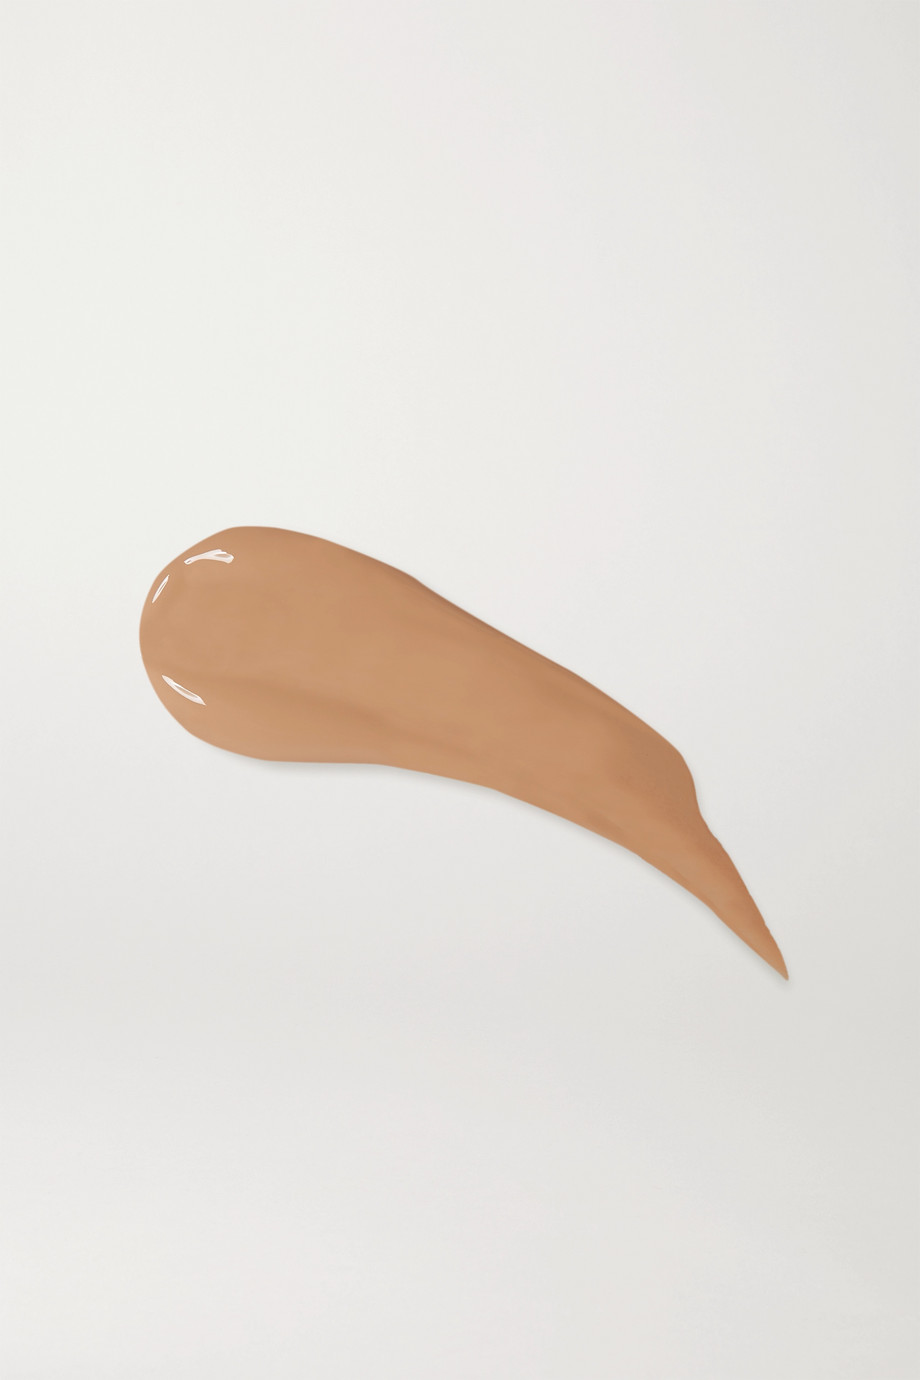 TOM FORD BEAUTY Shade and Illuminate Soft Radiance Foundation SPF50 - 6.0 Natural, 30ml